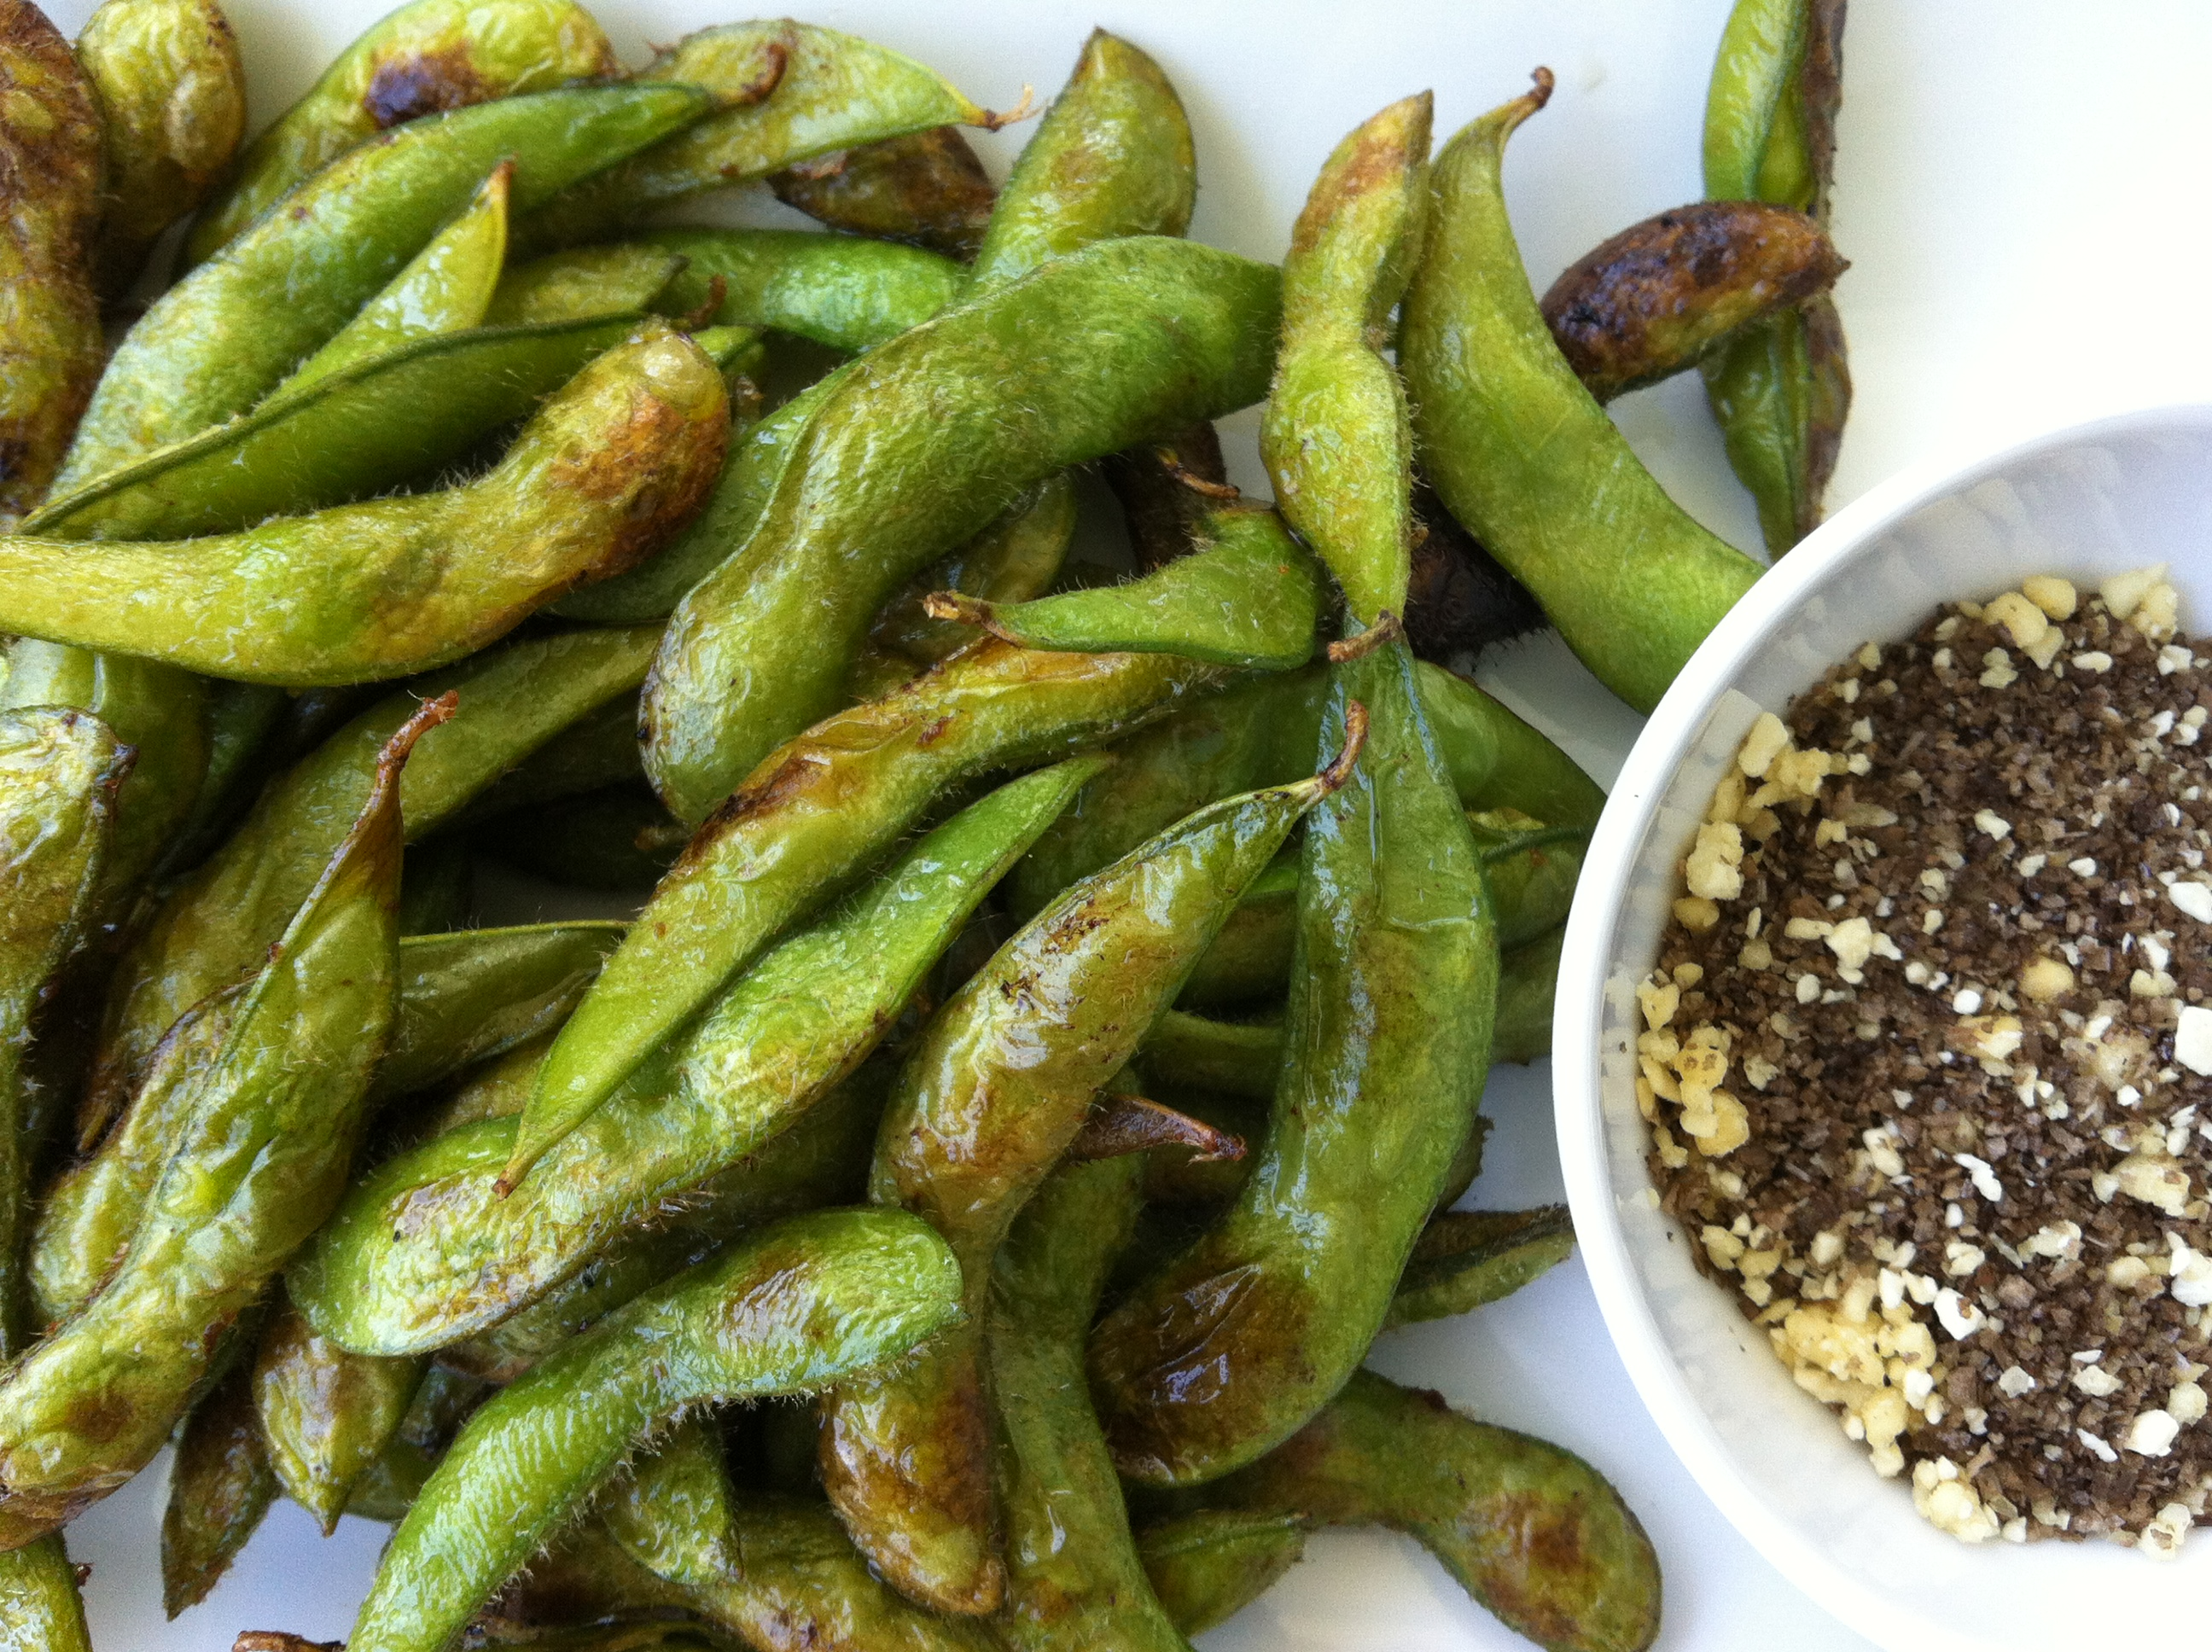 Charred Edamame with Smoked Salt and Pop Rocks